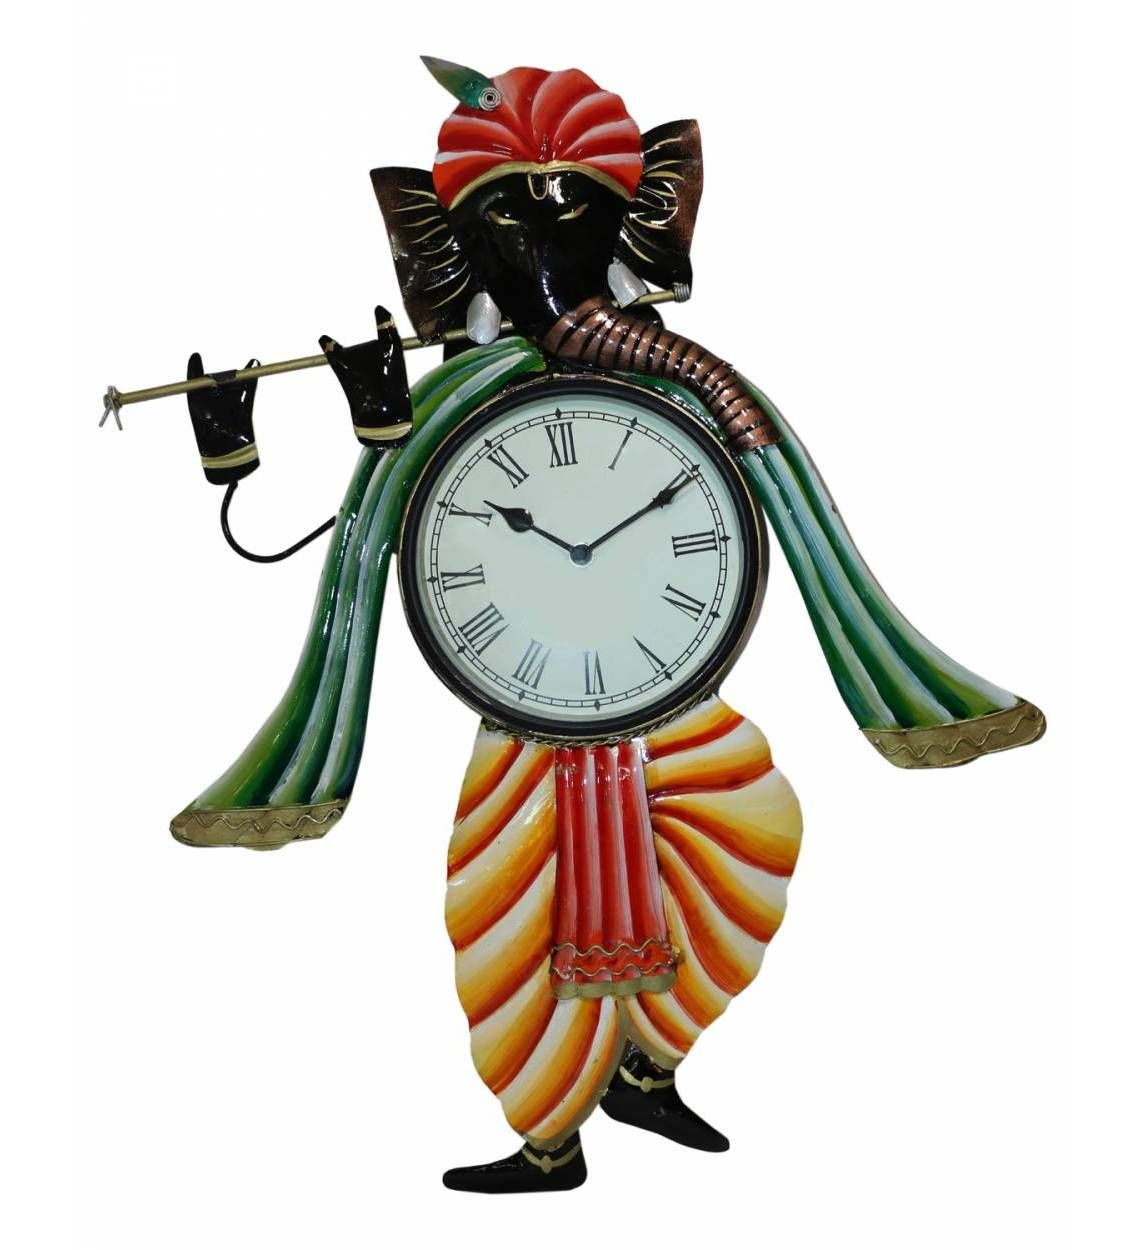 Iron Hand Painted Ganesh Ji Wall Clock Designer Decorative Wall